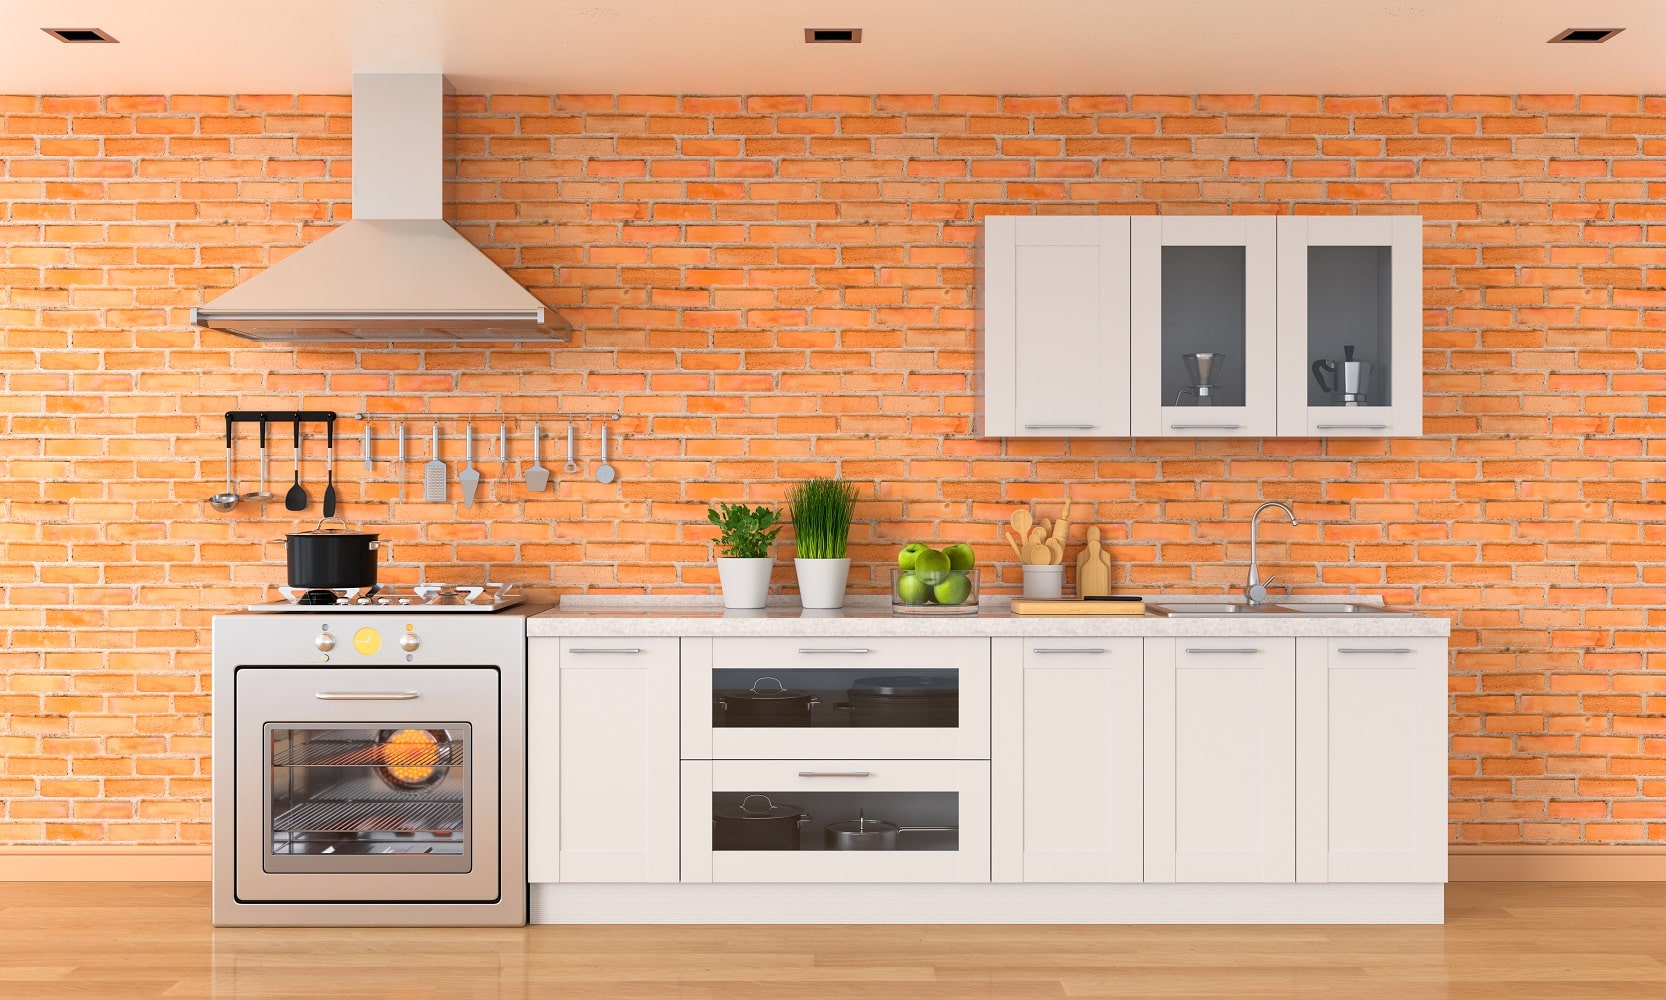 11 Best Range Hoods Of 2021 To Consider Architecture Lab